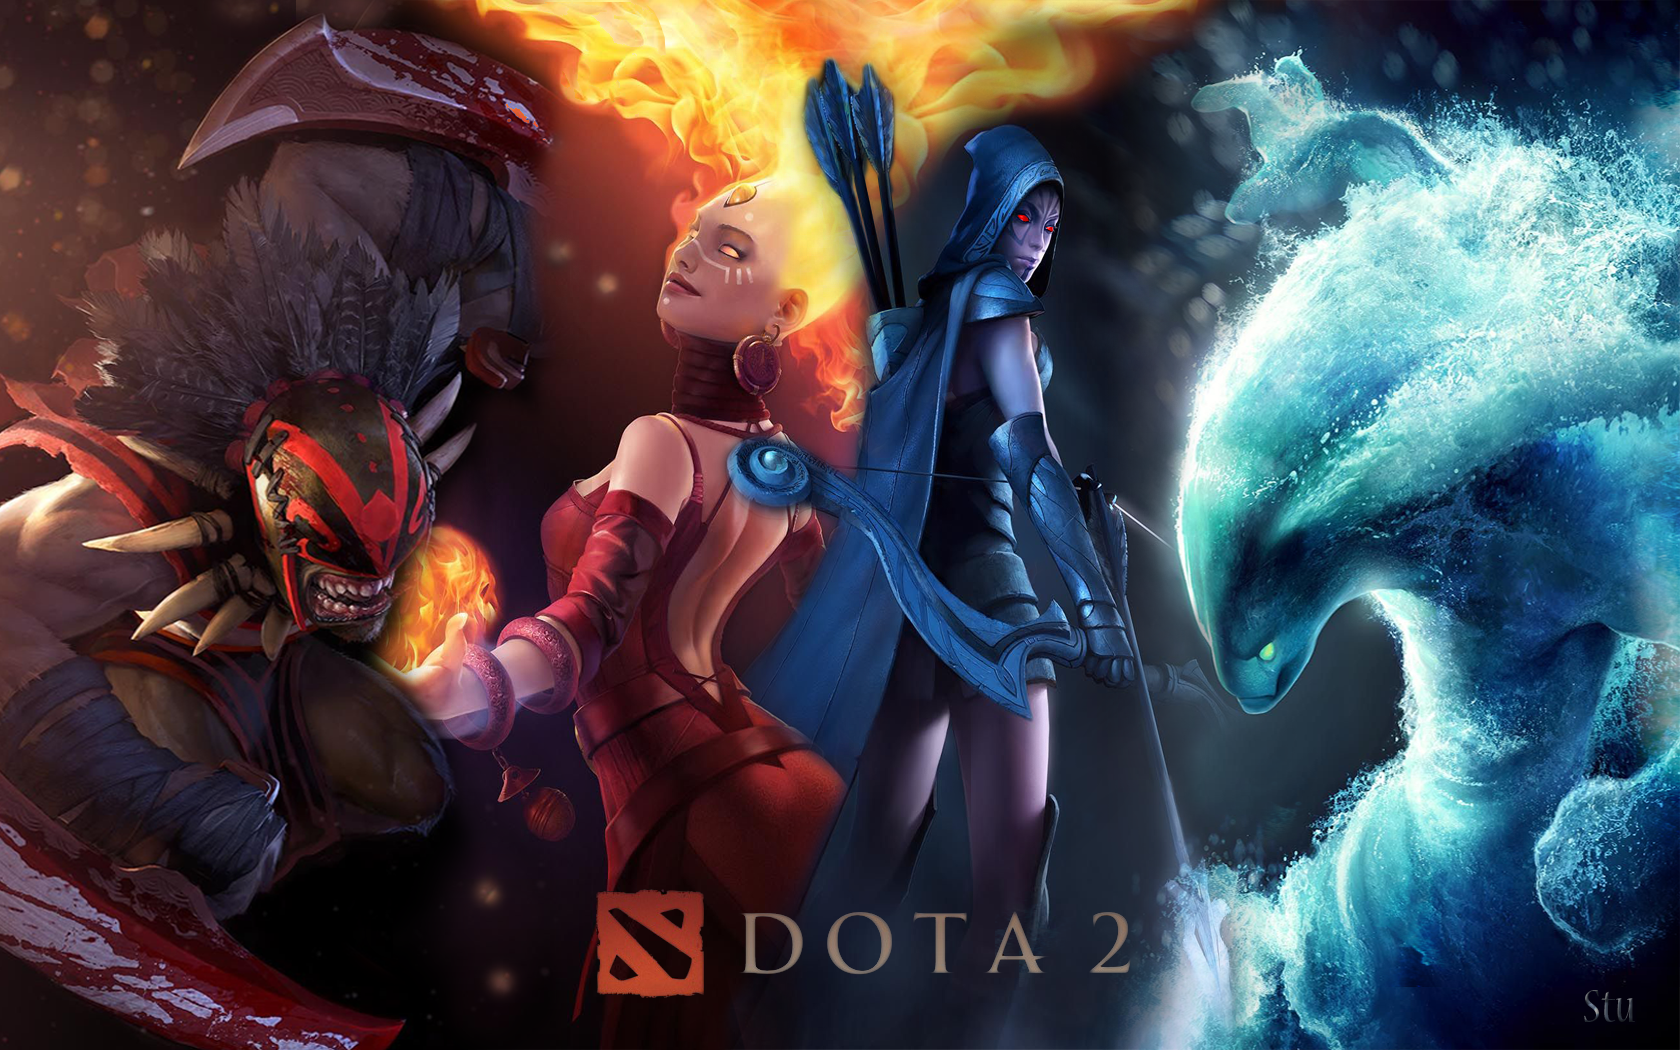 (1680x1050) - Dota 2 Wallpapers, Chan Montes